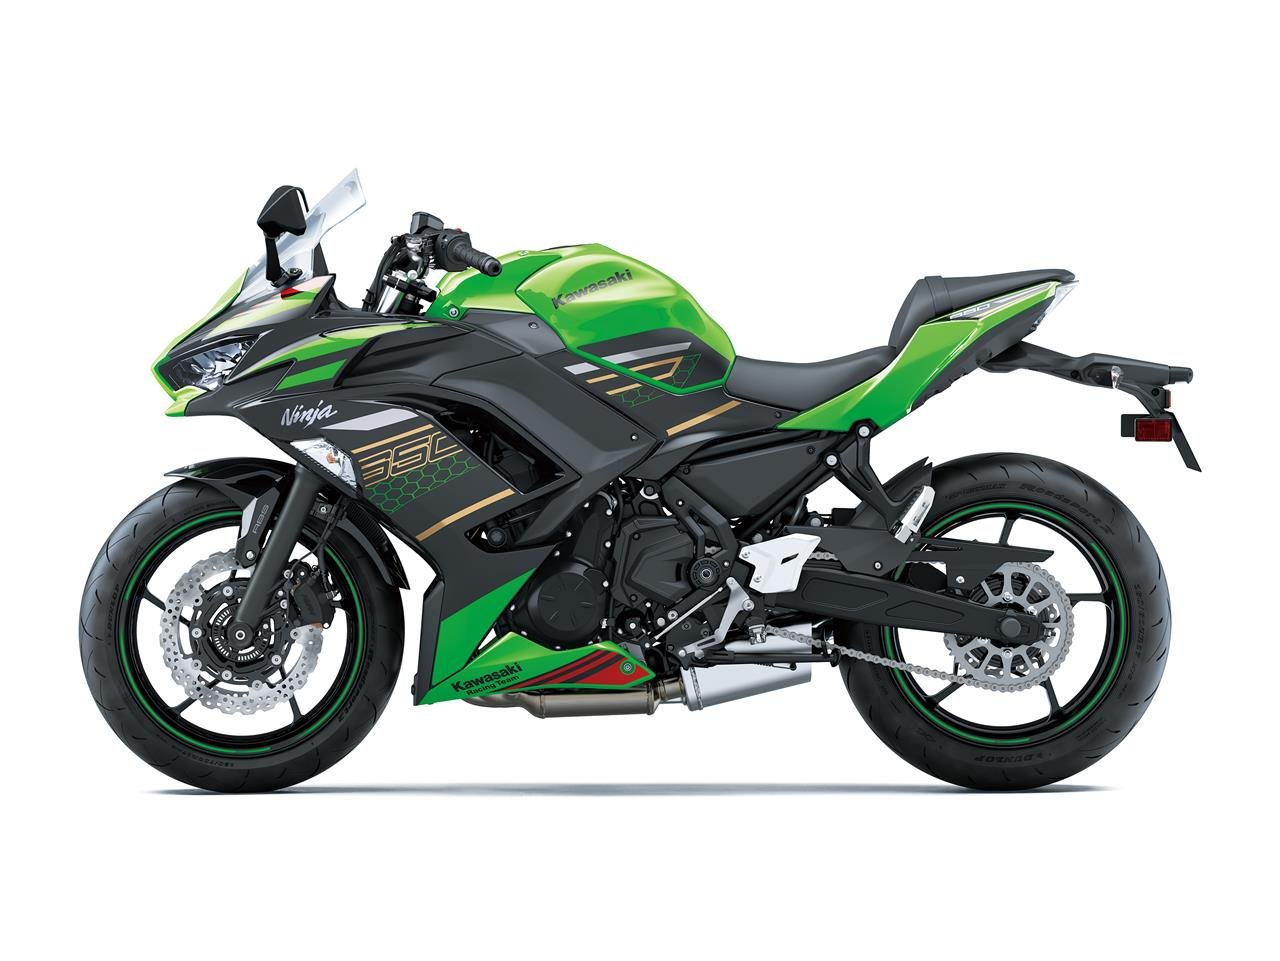 New 2020 Kawasaki Ninja 650 KRT*FREE DELIVERY & 3YR 0% APR* For Sale (picture 3 of 6)